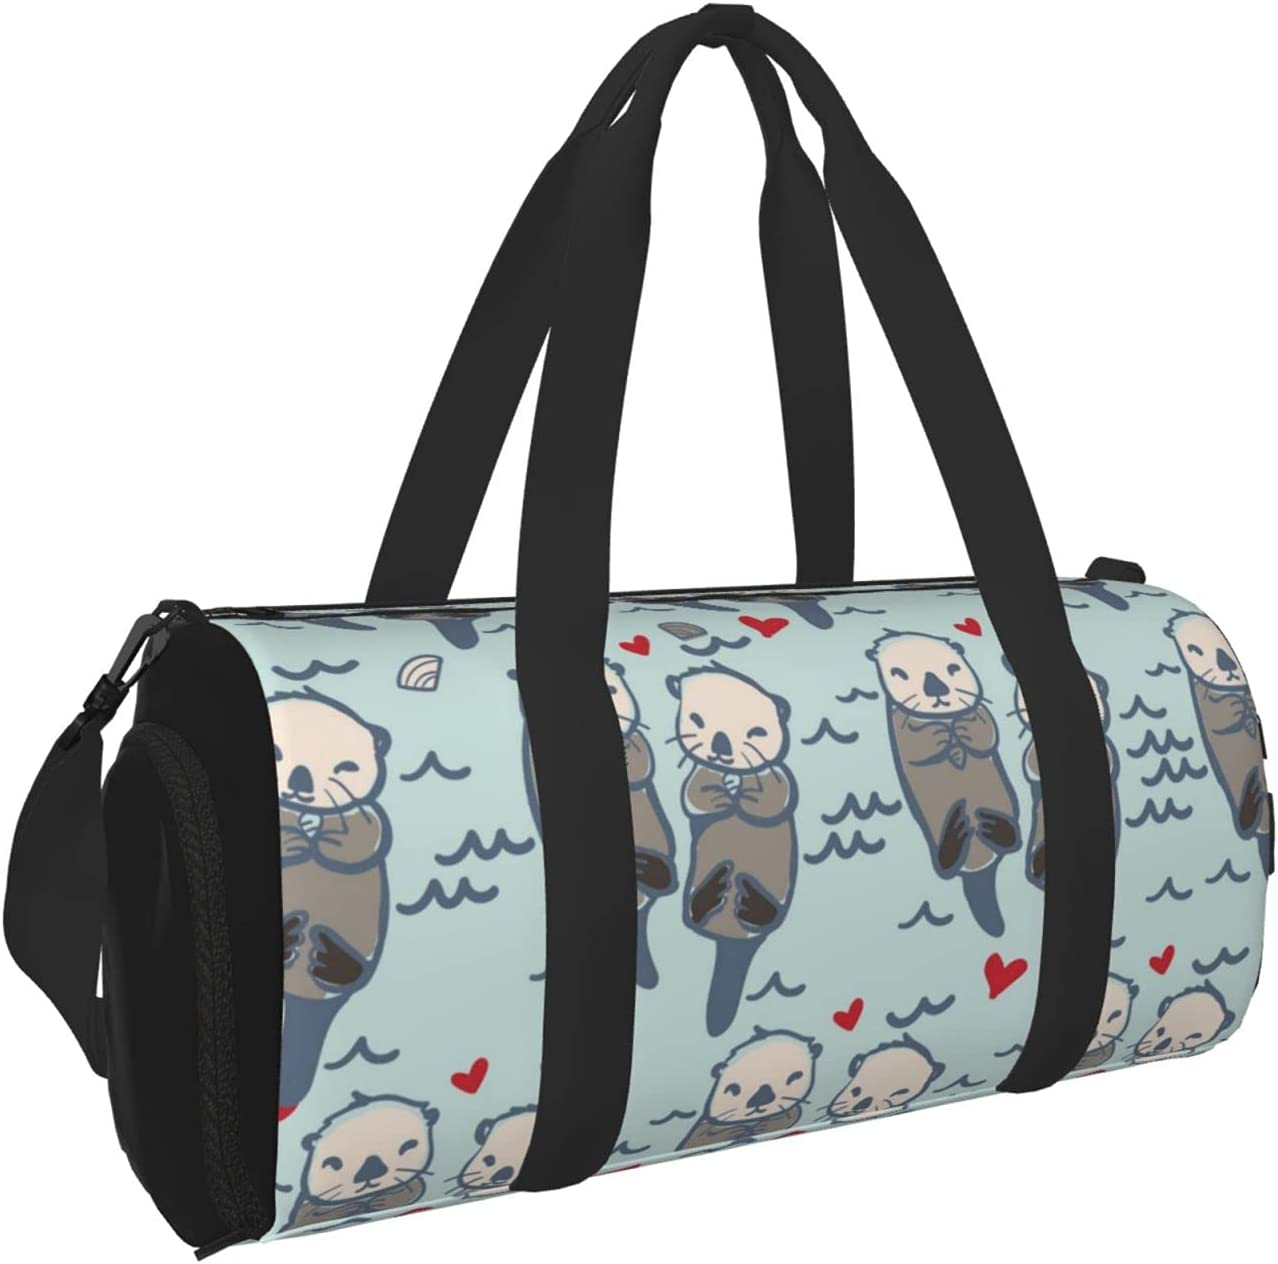 depot Timeergy Super sale Sea Otter Pattern Gym Bag Duffel Travel L Bags Carry On